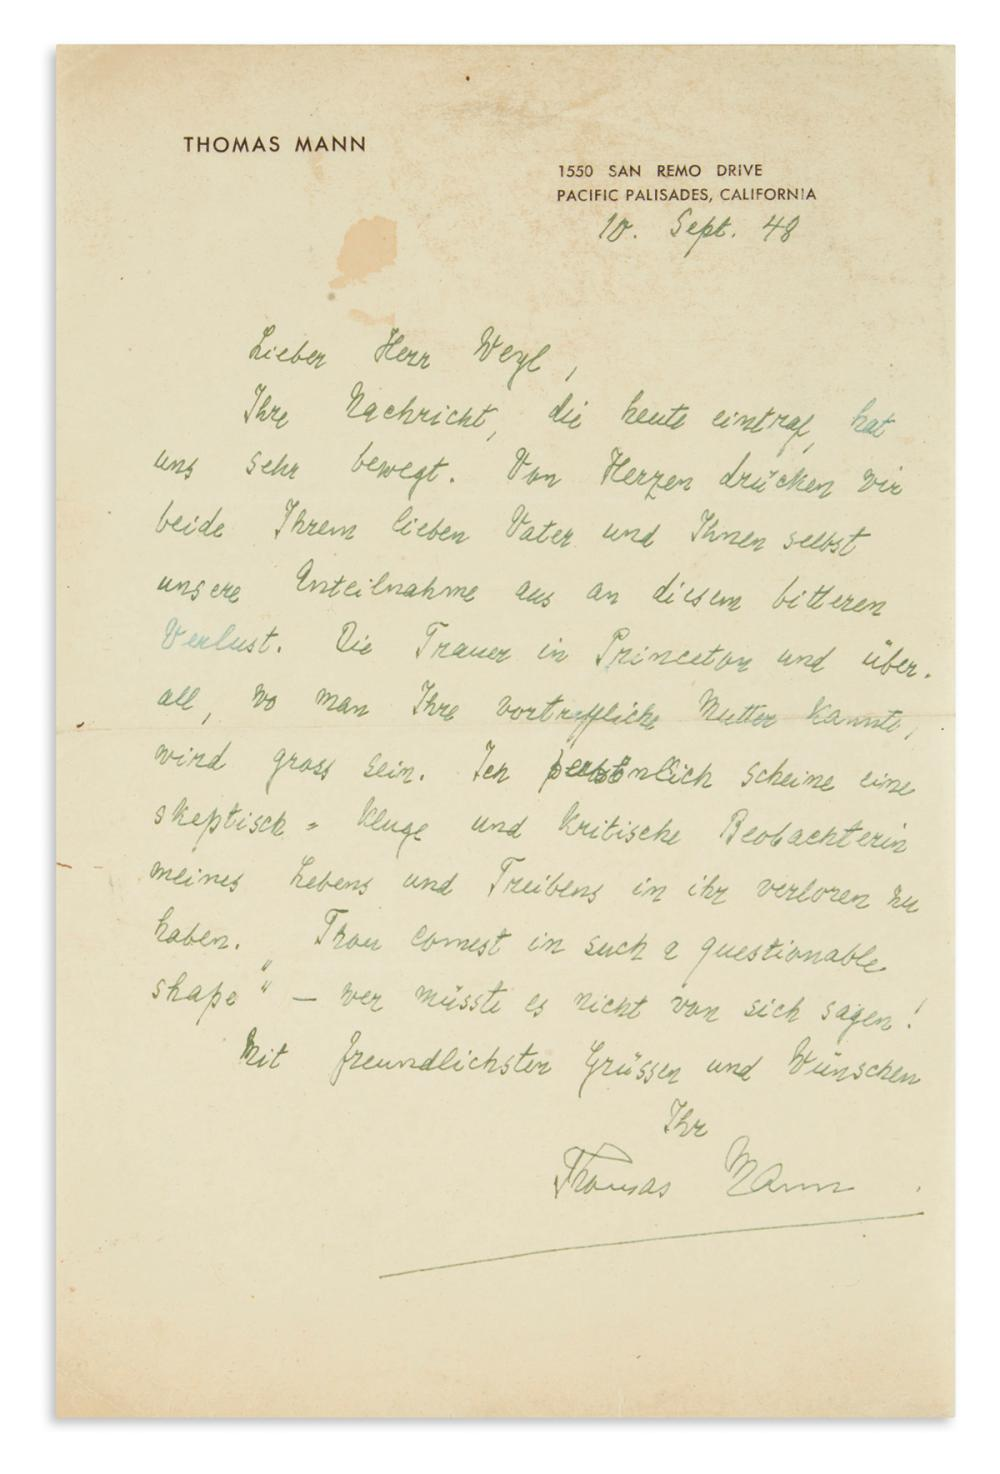 MANN, THOMAS. Autograph Letter Signed, to Michael Weyl, in German and English,